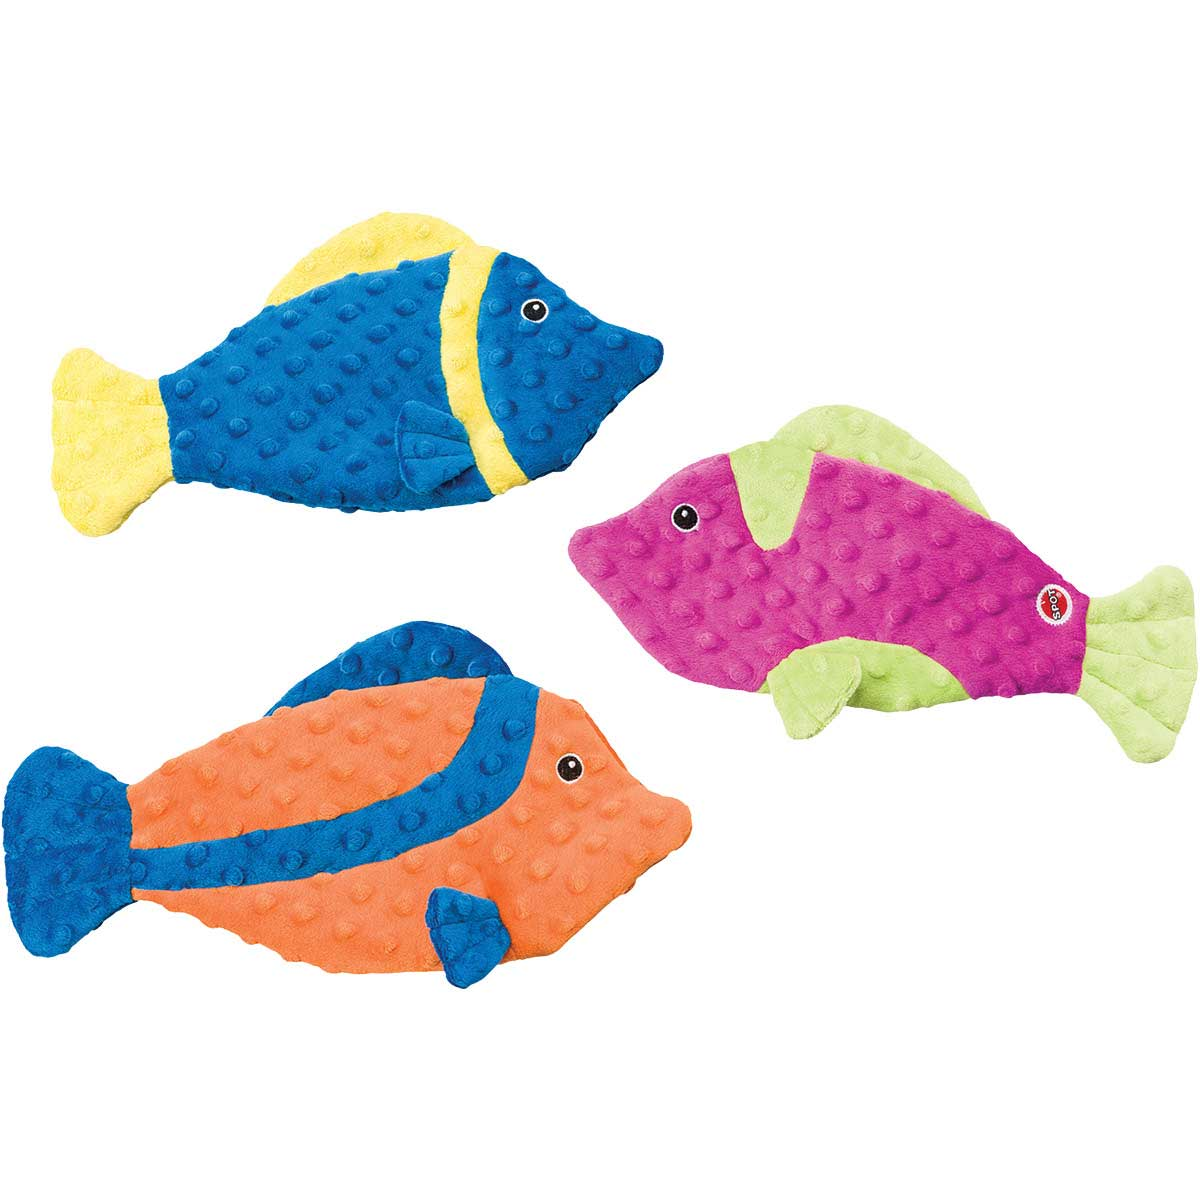 13 inch Skinneeez Extreme Fish Dog Toys - Assorted Colors